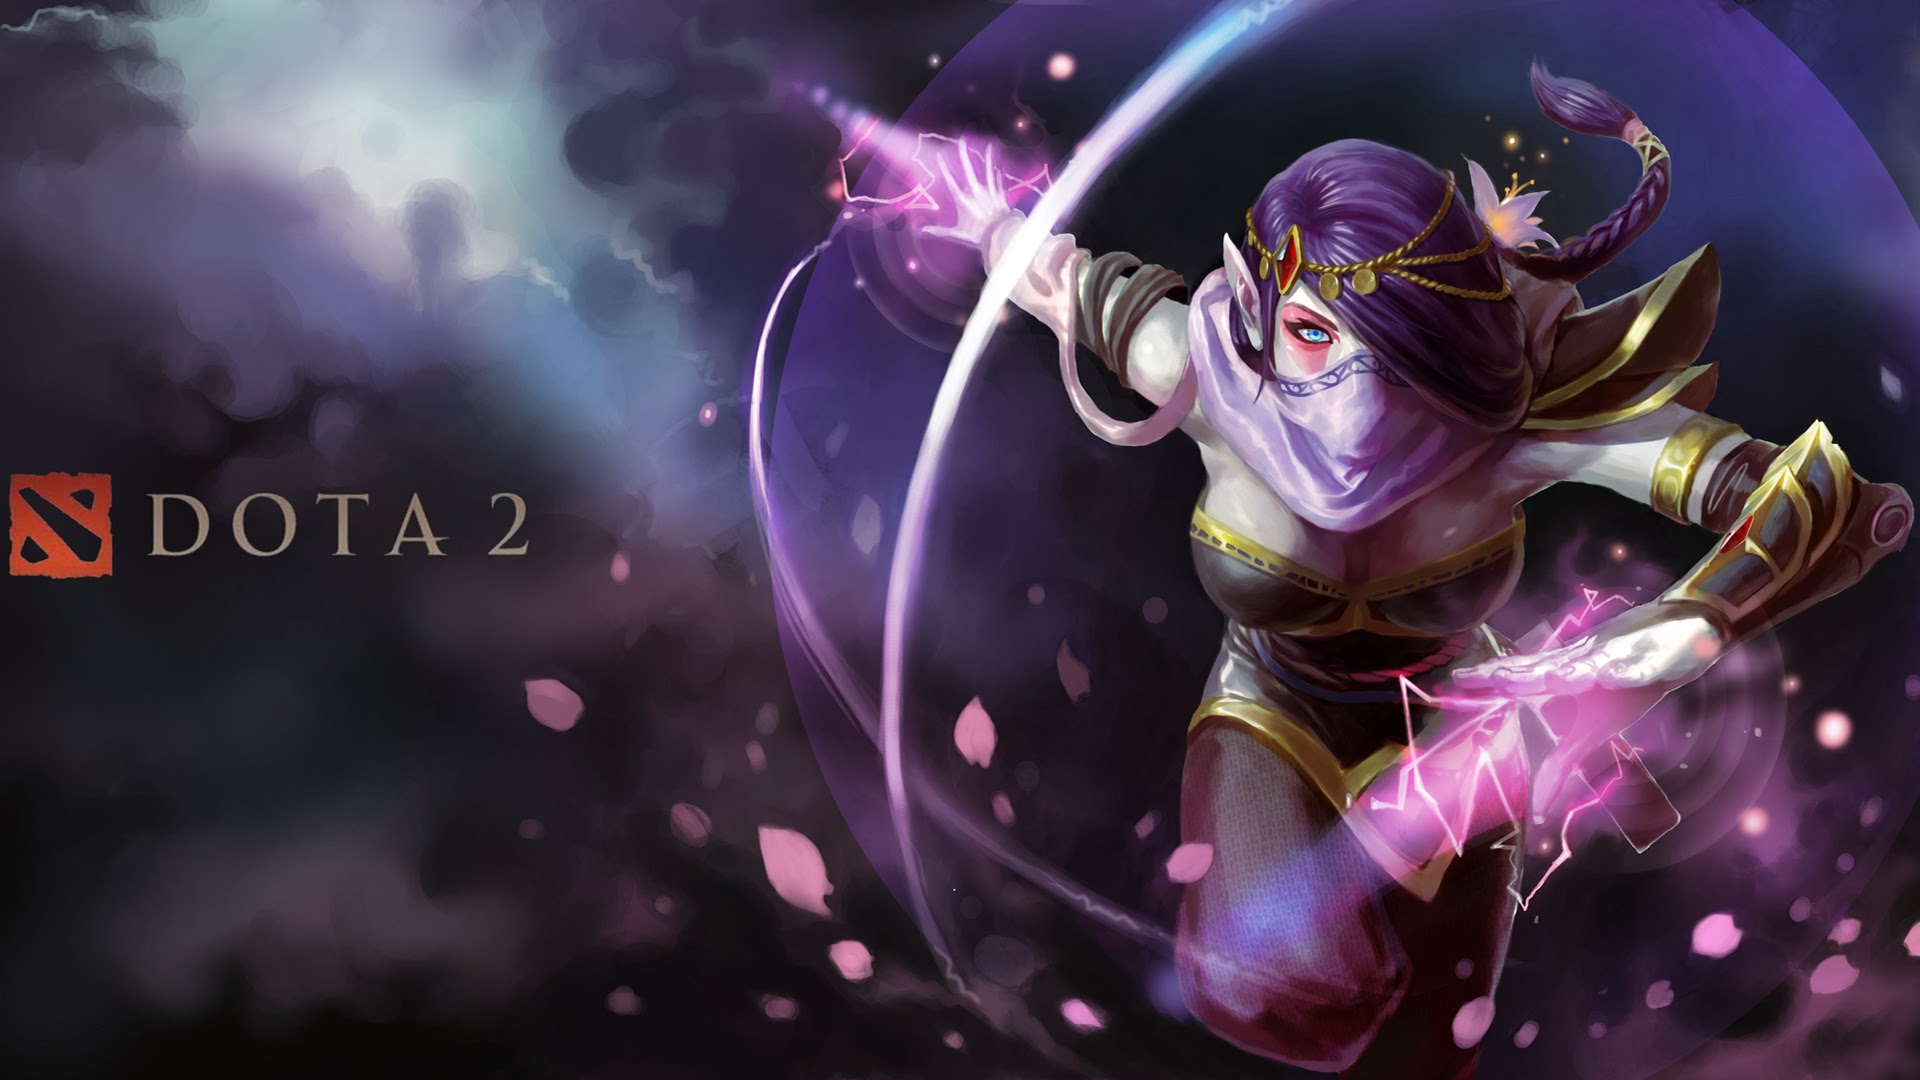 Dota2 : Templar Assassin HQ wallpapers